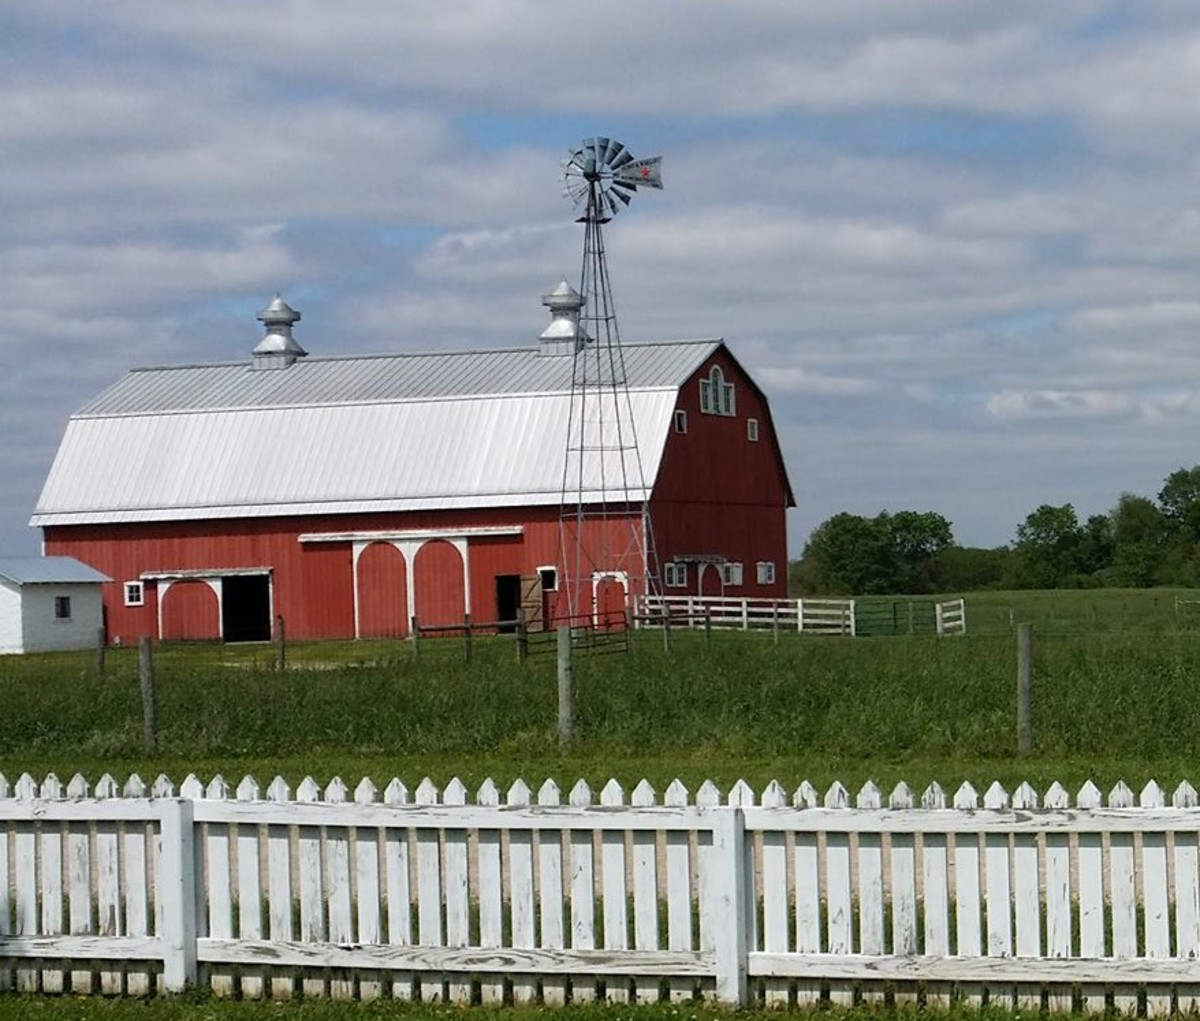 The Historic Prophetstown Farmstead